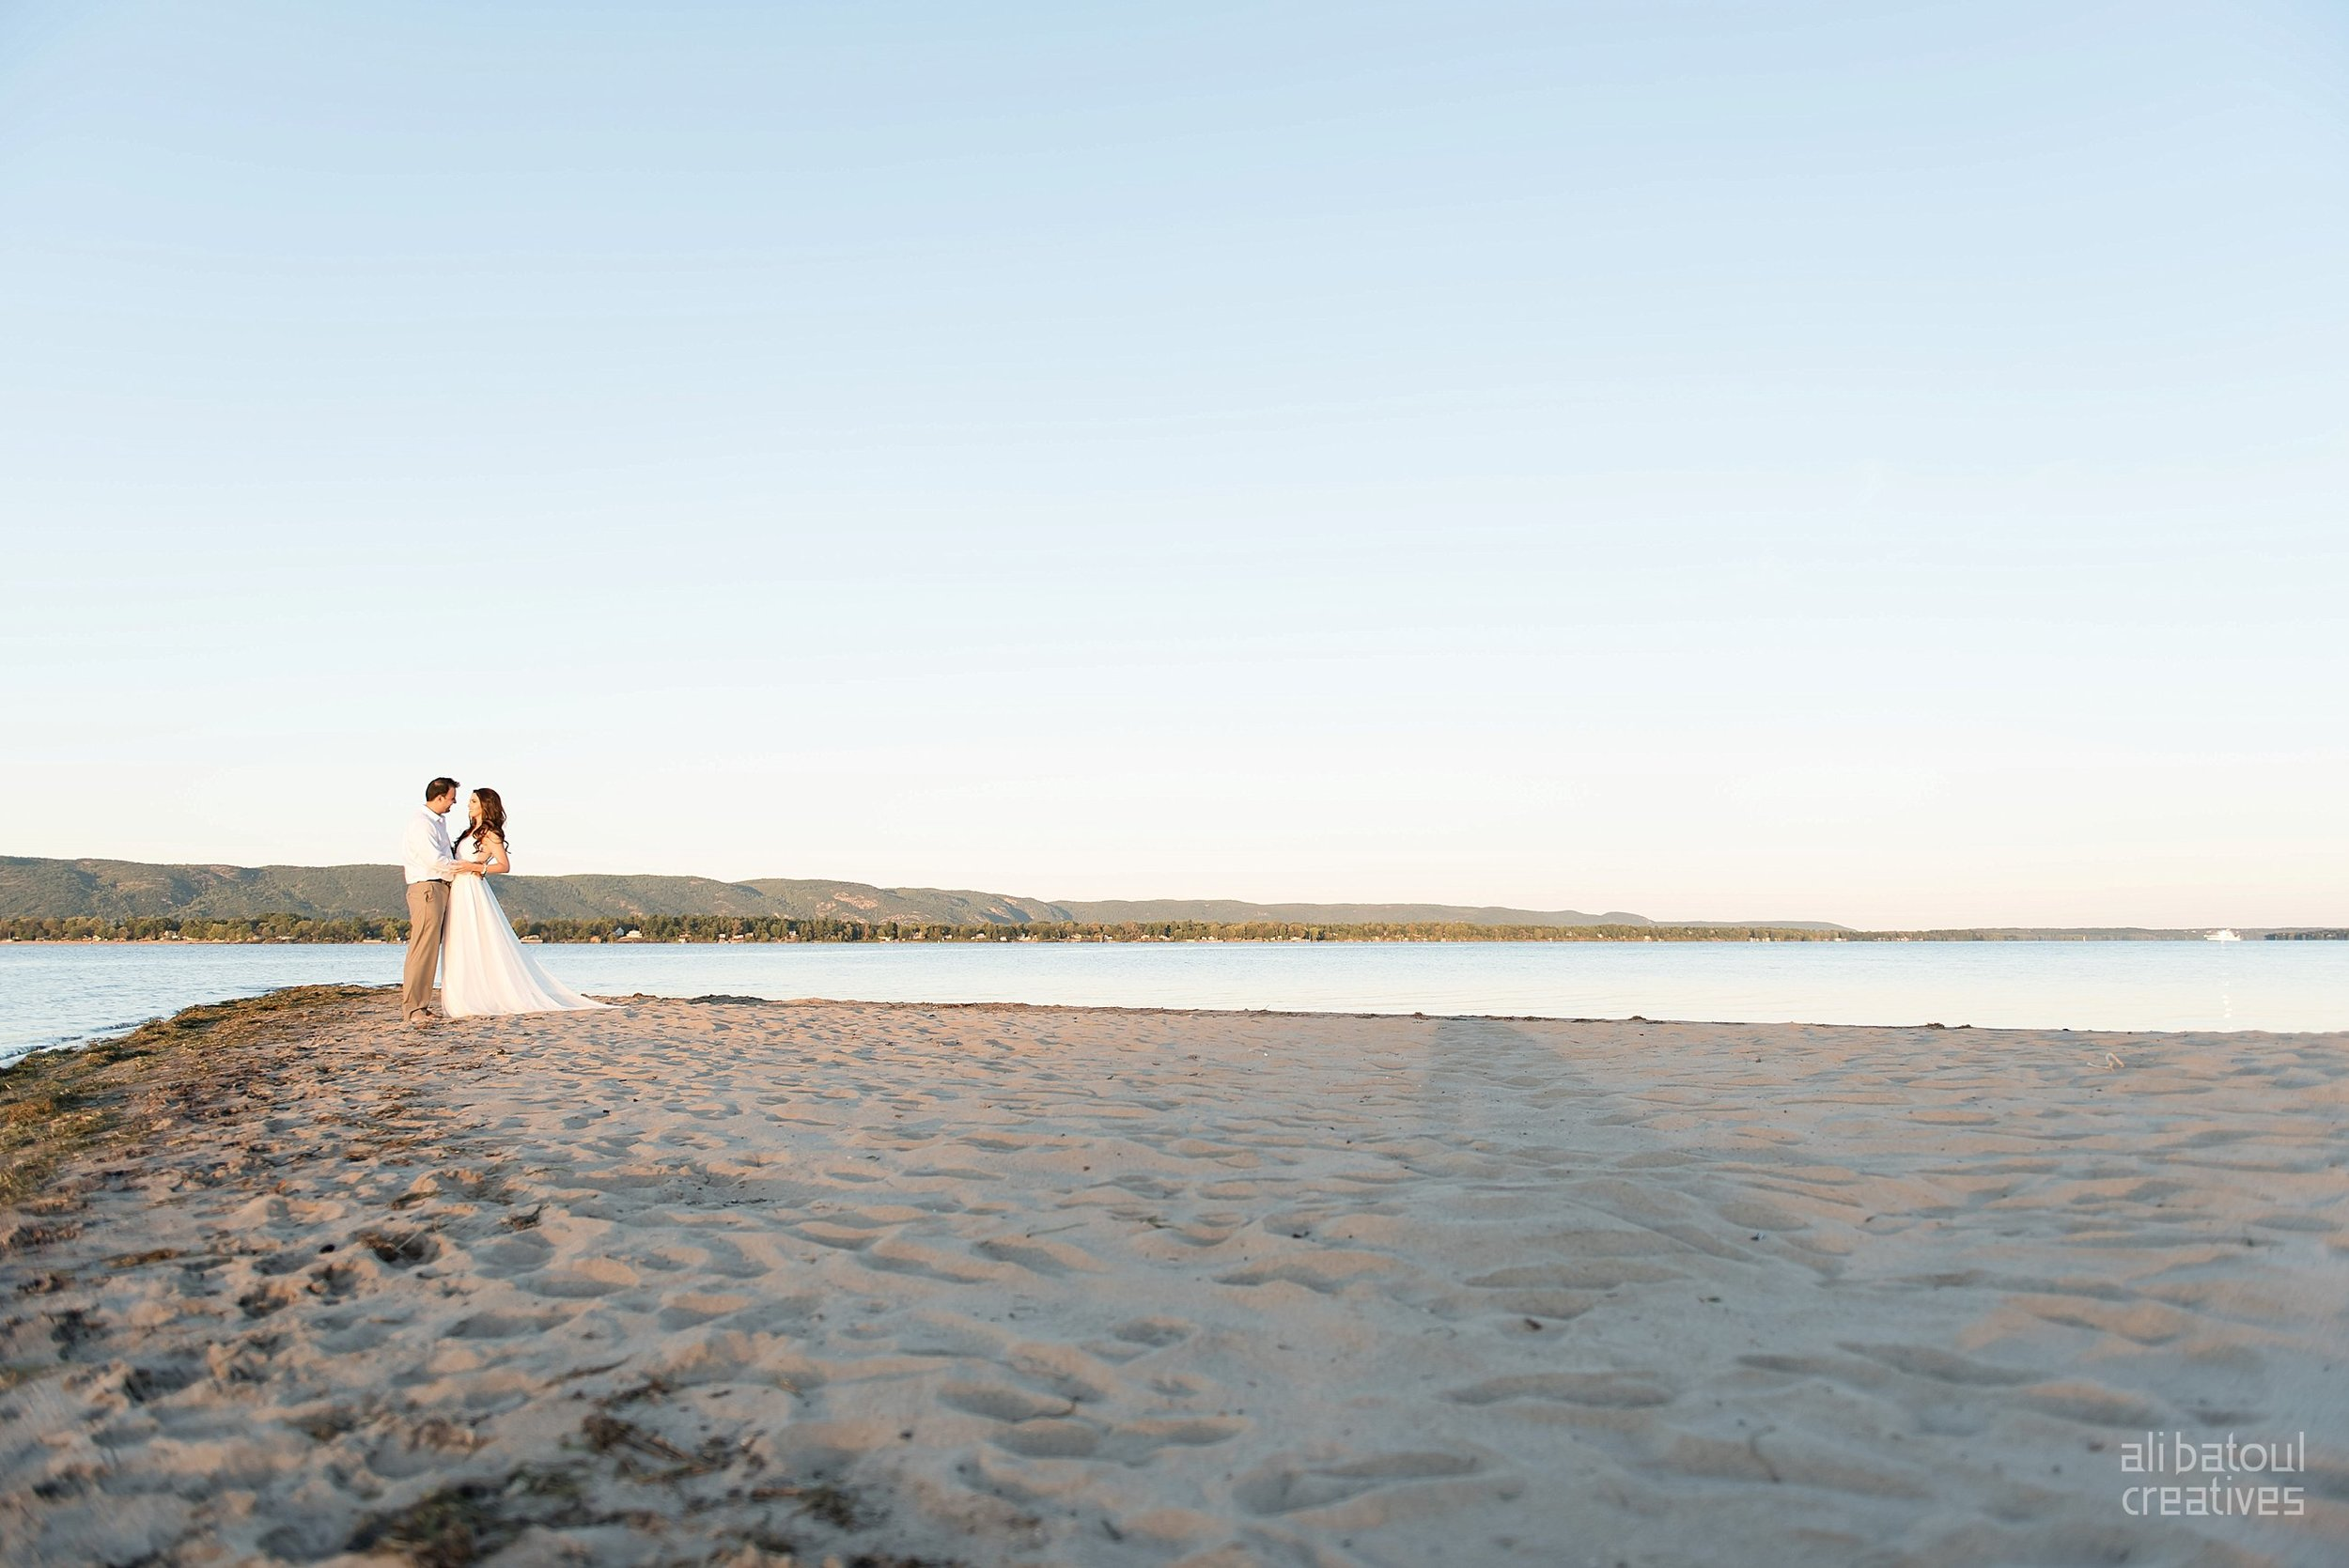 Alaa + Jad - Ottawa Beach Bridal Shoot (Ali Batoul Creatives)-124_Stomped.jpg